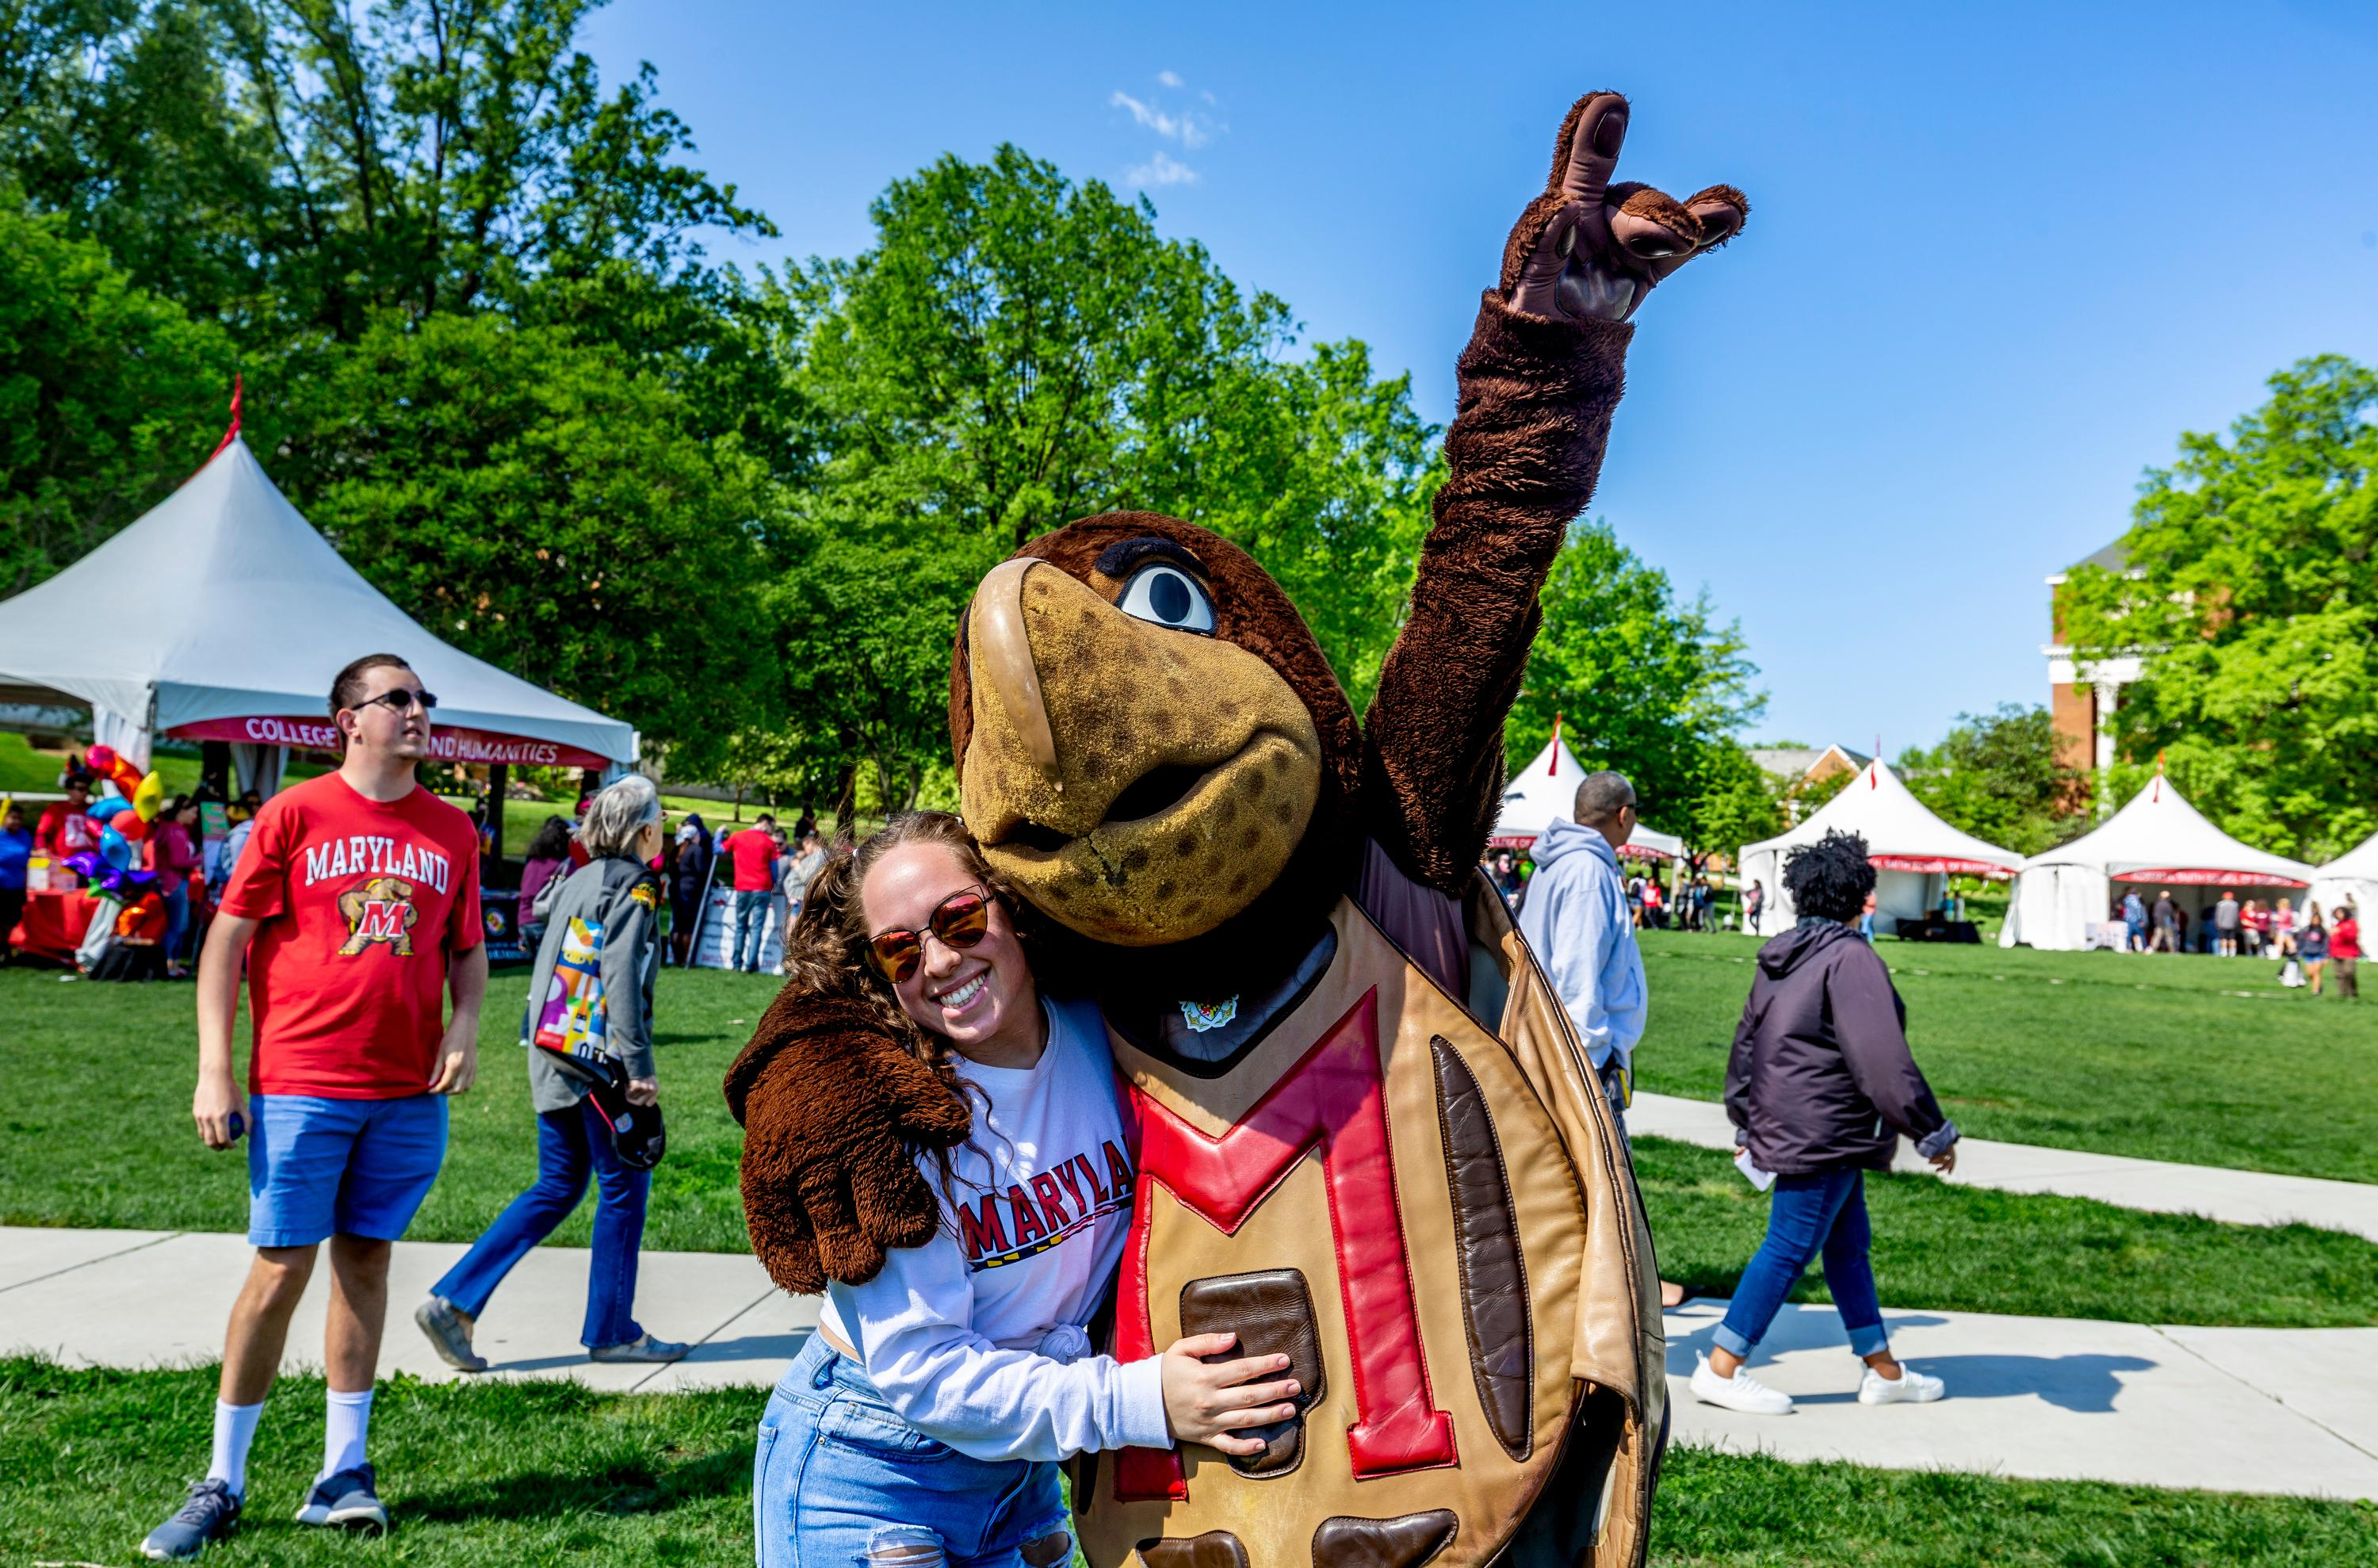 Testudo and woman in Maryland sweatshirt on Maryland Day 2019. Photo by Stephanie S. Cordle.